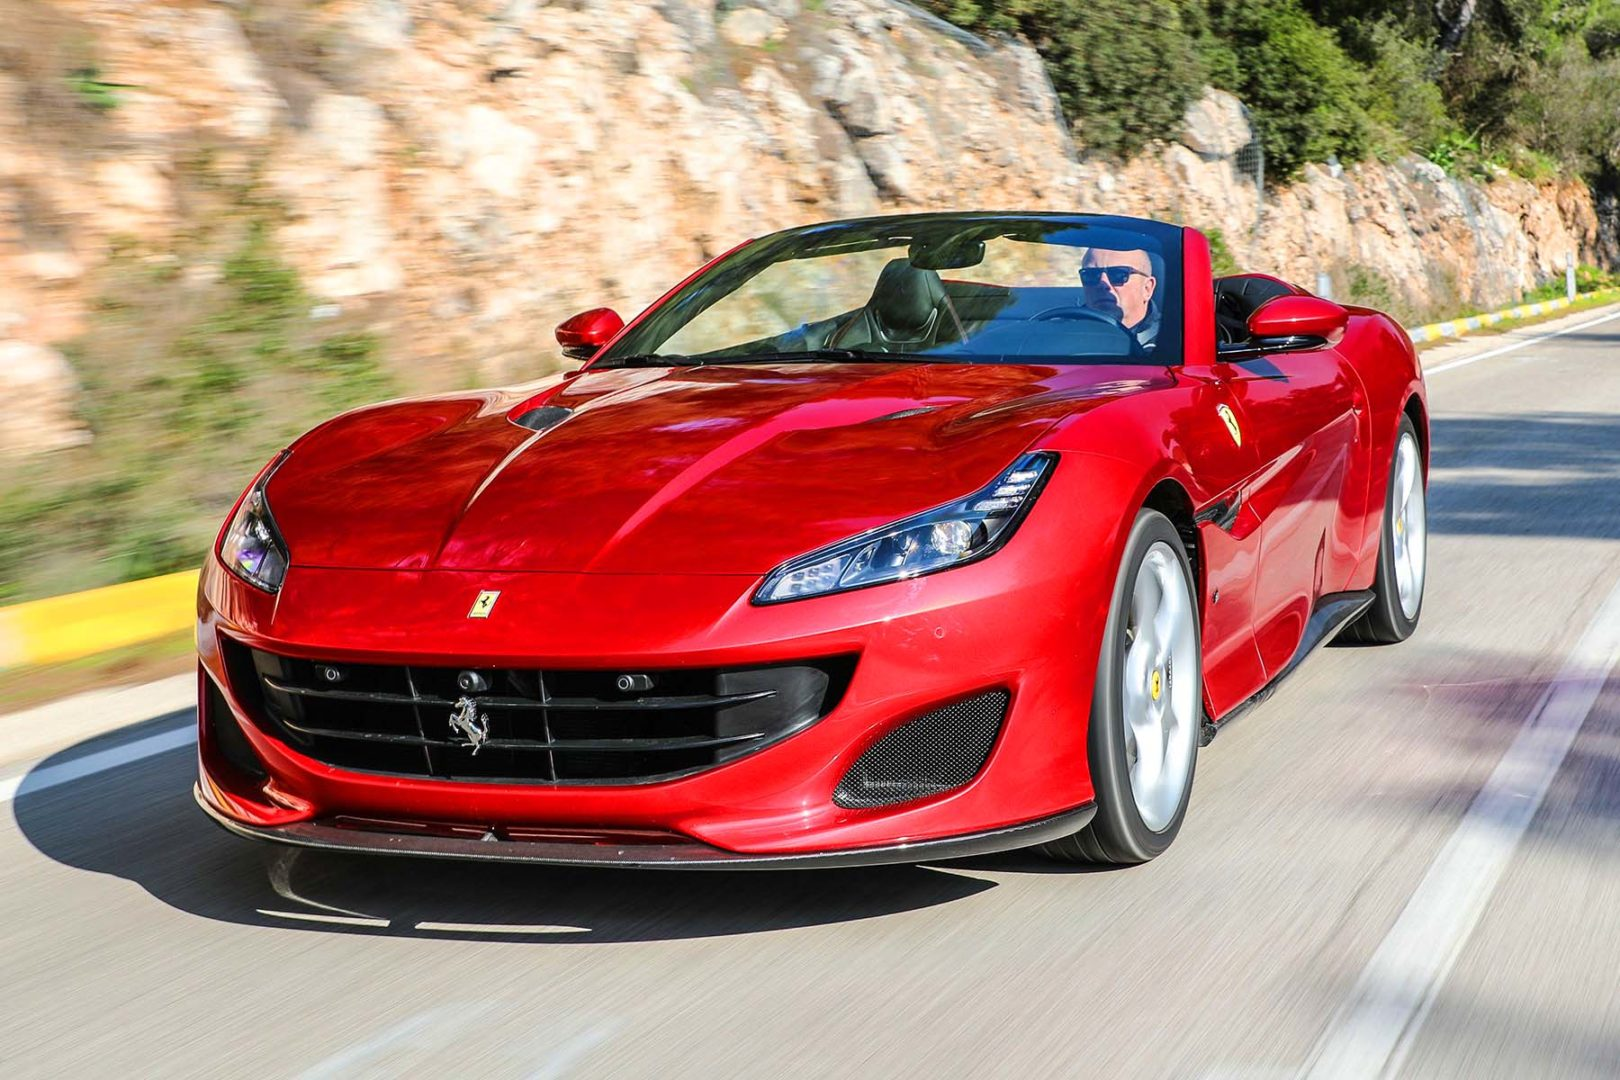 portofino test, due ferrari in un solo corpo: coupé e spider con 600